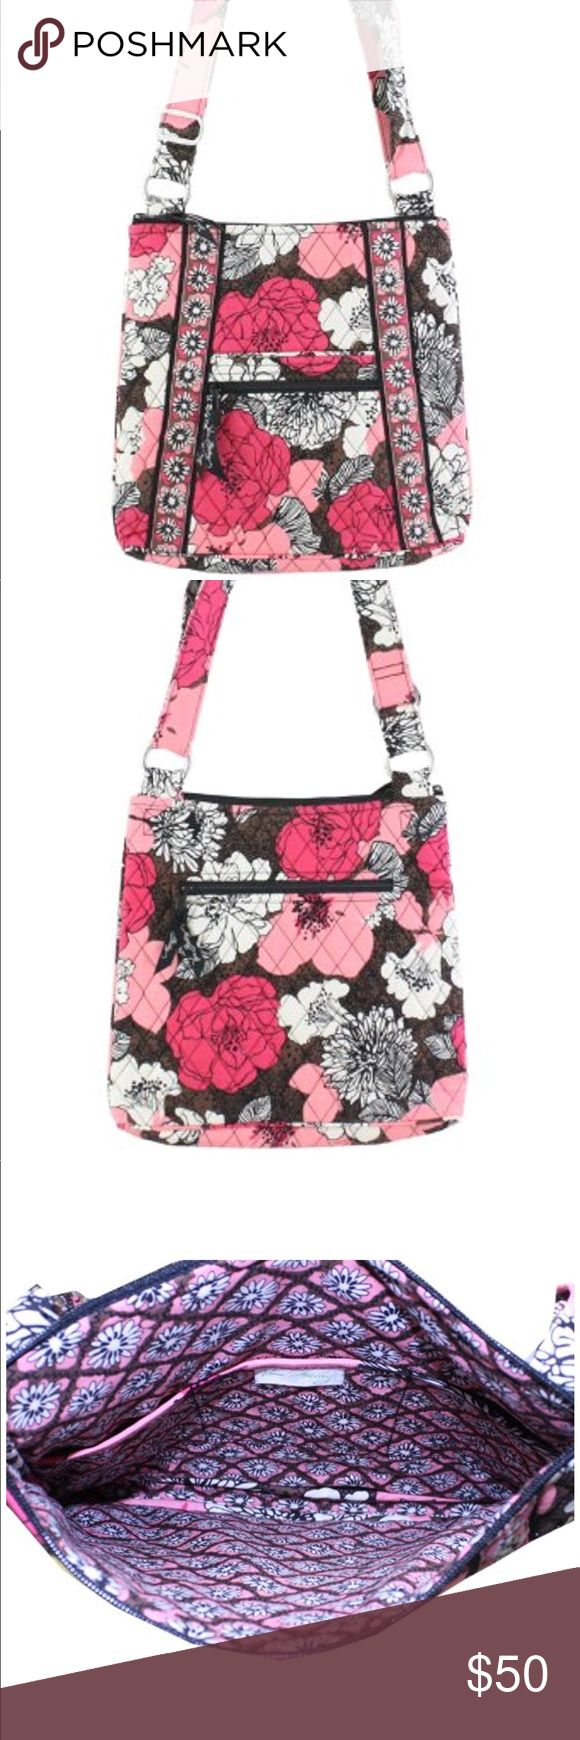 Vera Bradley Hipster Cross-Body Bag Vera Bradley's Hipster is the ultimate cross-body bag. There is a quick-access front open slip and zippered pocket, as well as a zip pocket on the back to keep phone and keys secure. Three slip pockets add to the organization inside the main zippered compartment. It features a fully adjustable shoulder and cross-body strap and measures approximately 10 inches (L) x 10.5 inches (H) x 2 inches (W). Patterns with solid color interiors are designed and…